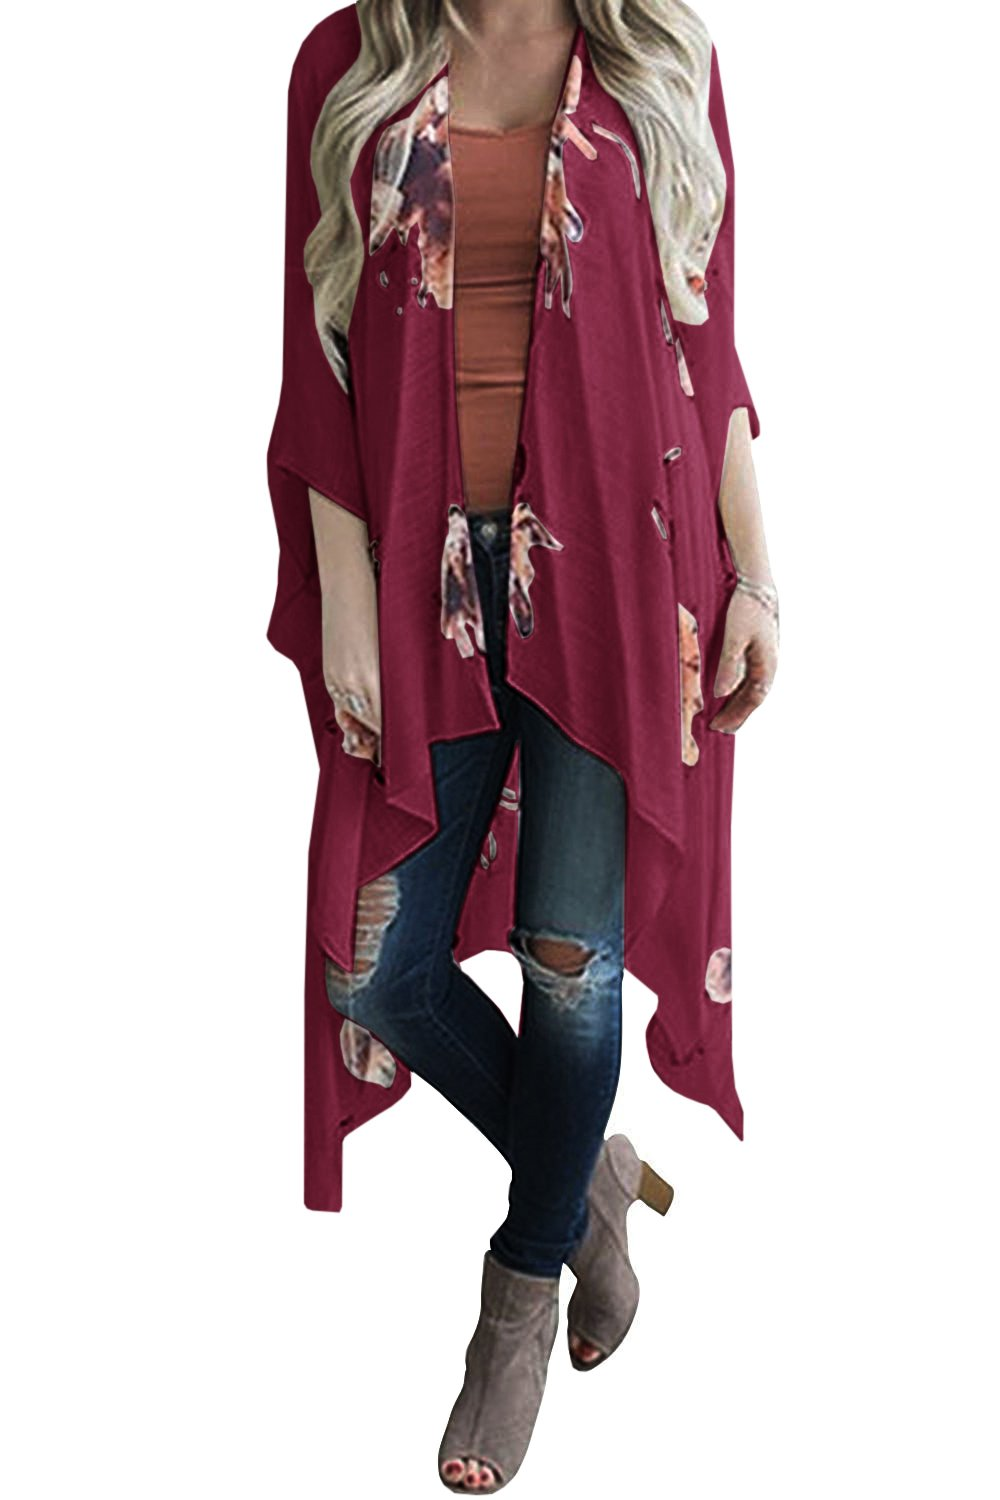 Geckatte Women's Floral Print Cardigan Chiffon Loose Swing Kimono Capes 3/4 Sleeve Irregular Tops (Medium, Wine Red)